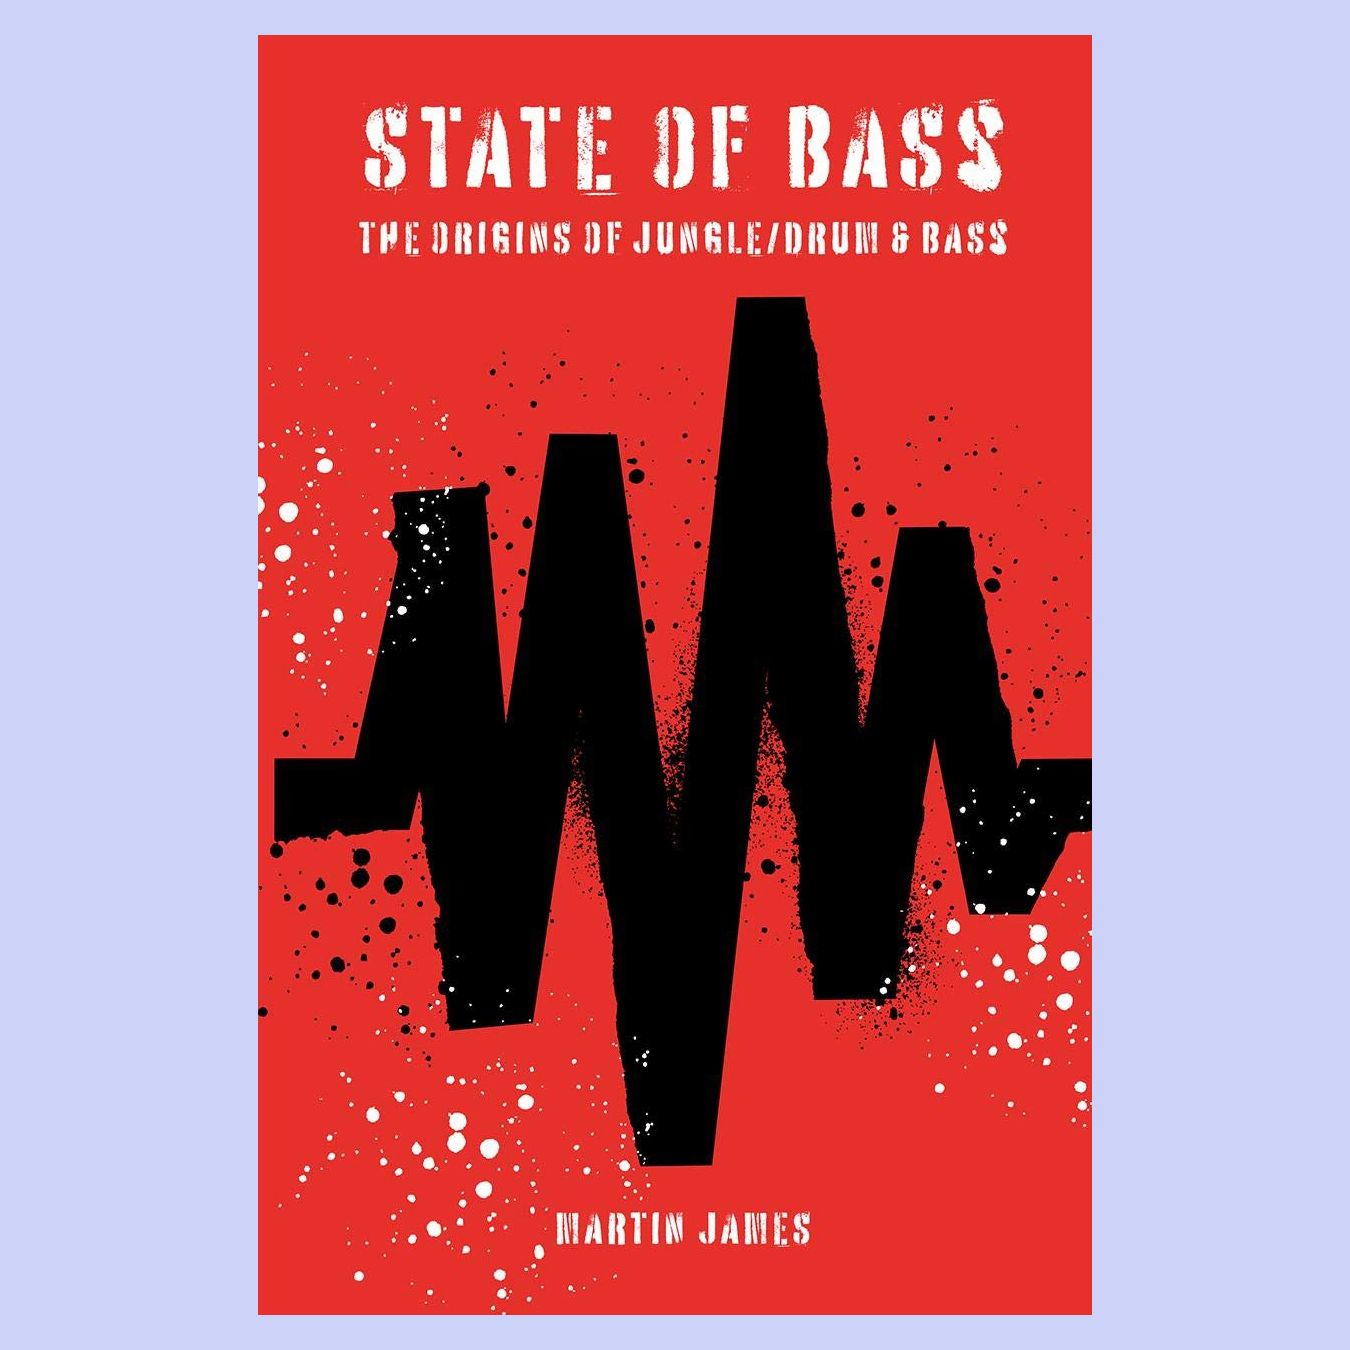 STATE OF BASS - THE ORIGINS OF JUNGLE / DRUM & BASS